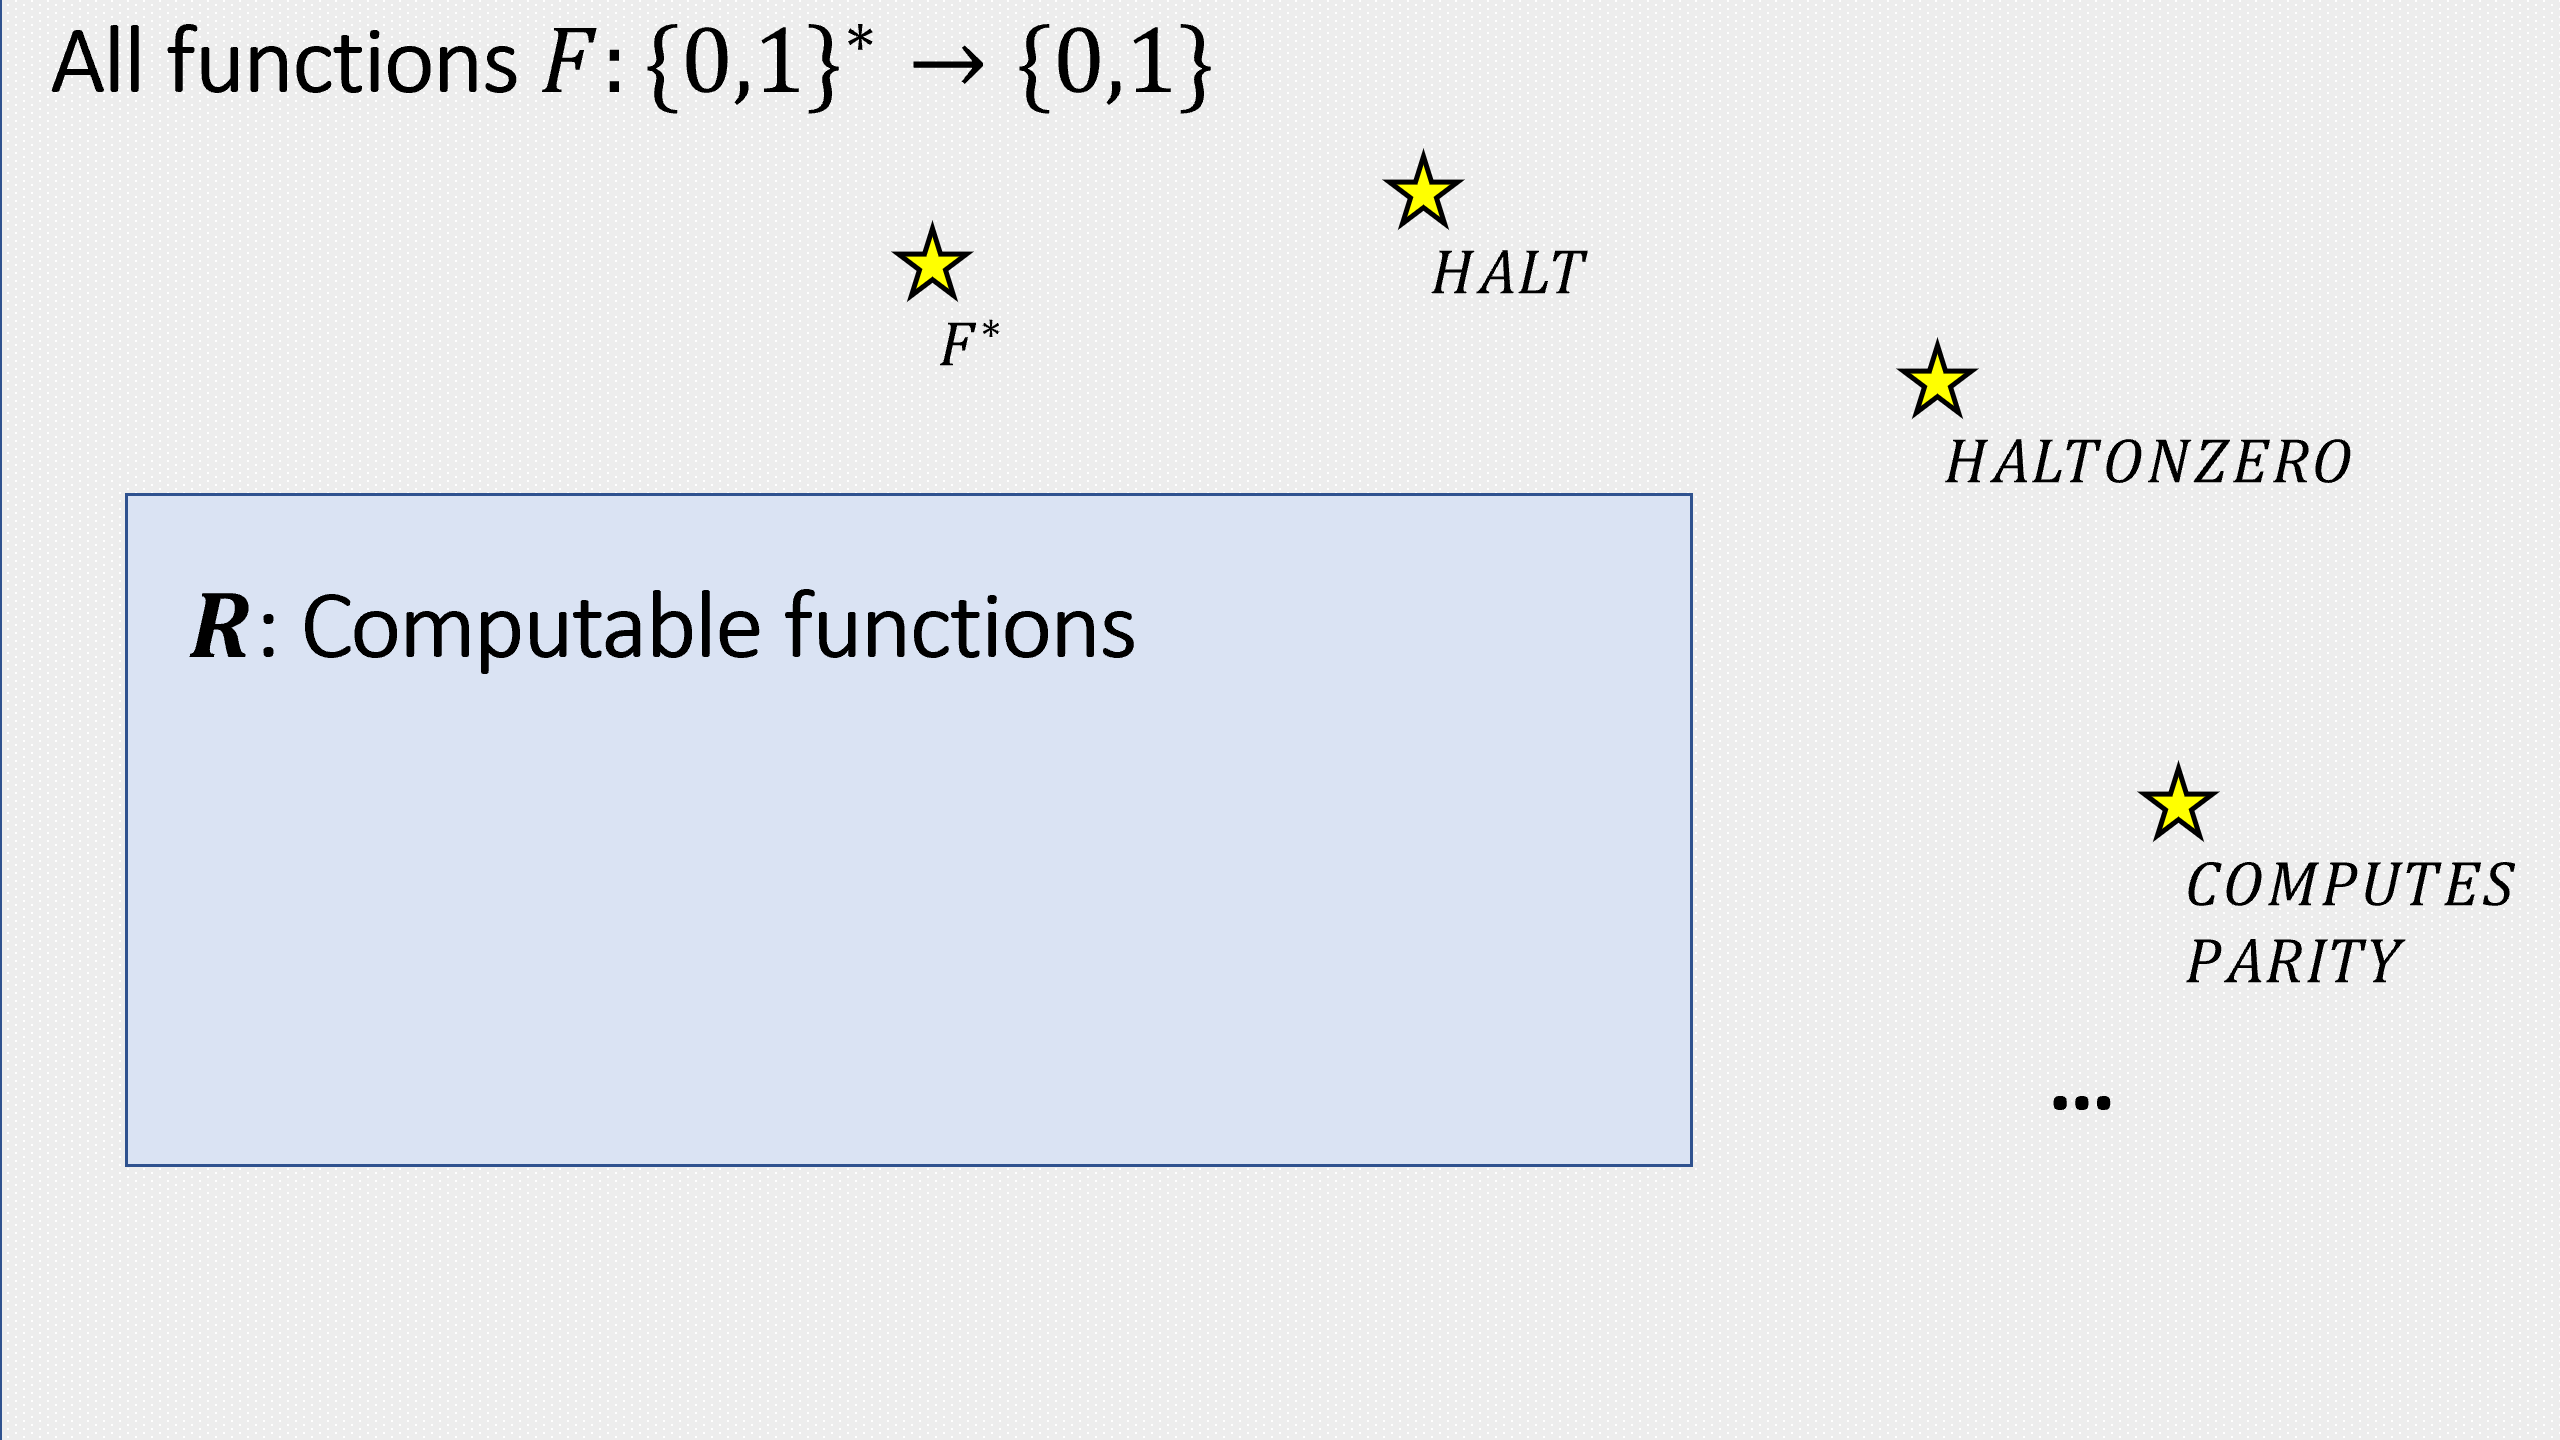 The set \mathbf{R} of computable Boolean functions () is a proper subset of the set of all functions mapping \{0,1\}^* to \{0,1\}. In this chapter we saw a few examples of elements in the latter set that are not in the former.